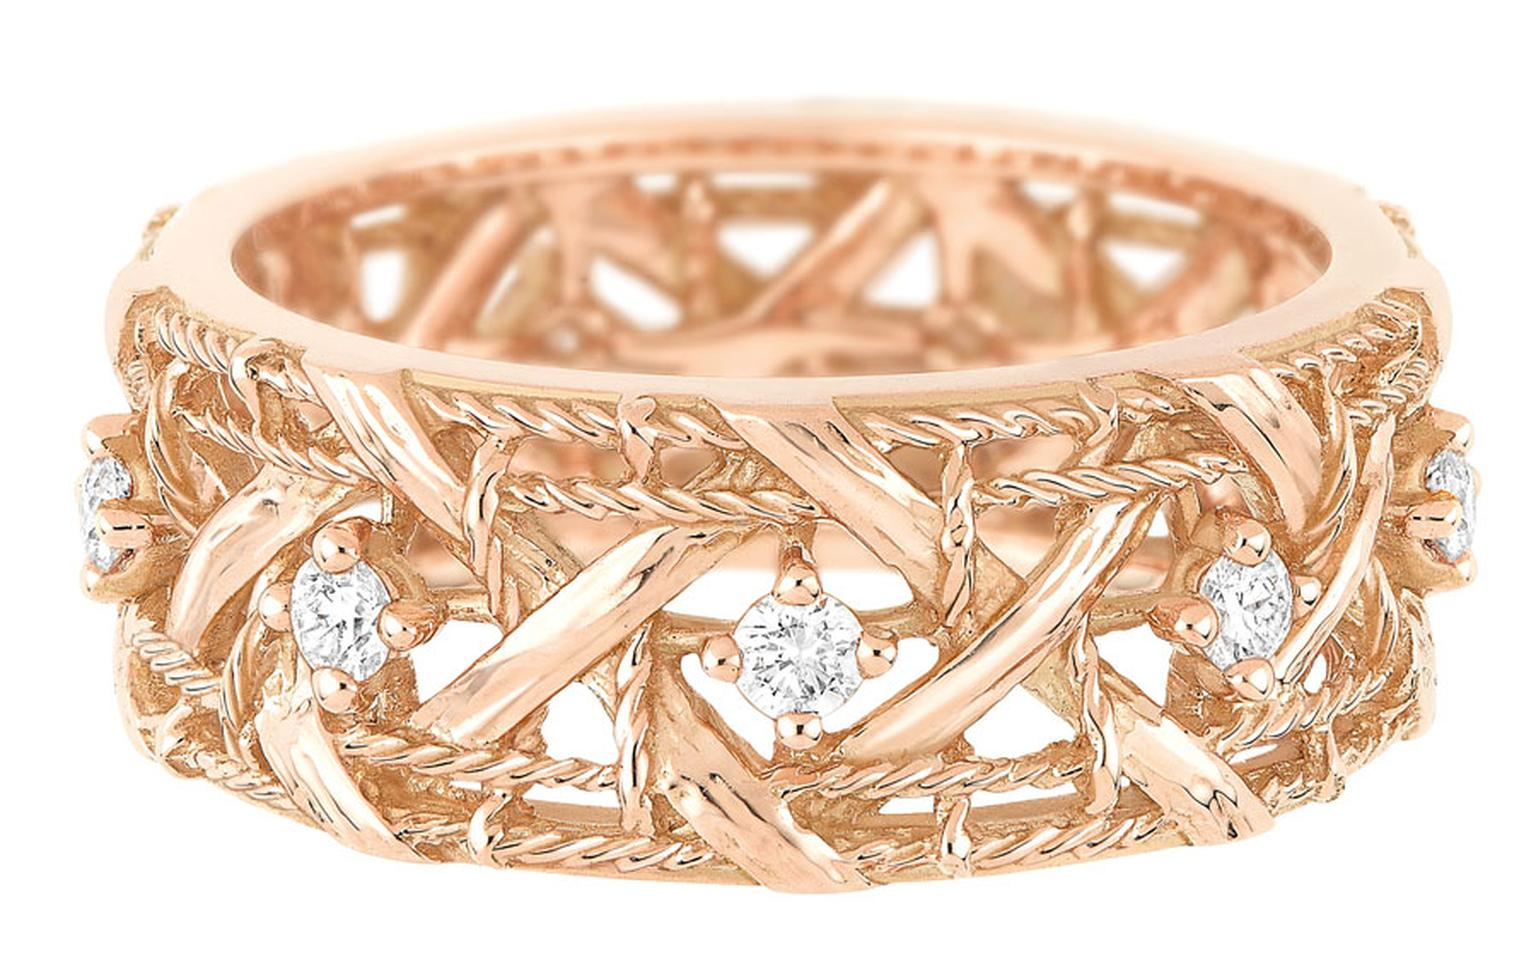 Dior-MY-DIOR-SM-RING-PINK-GOLD-AND-DIAMONDS.jpg